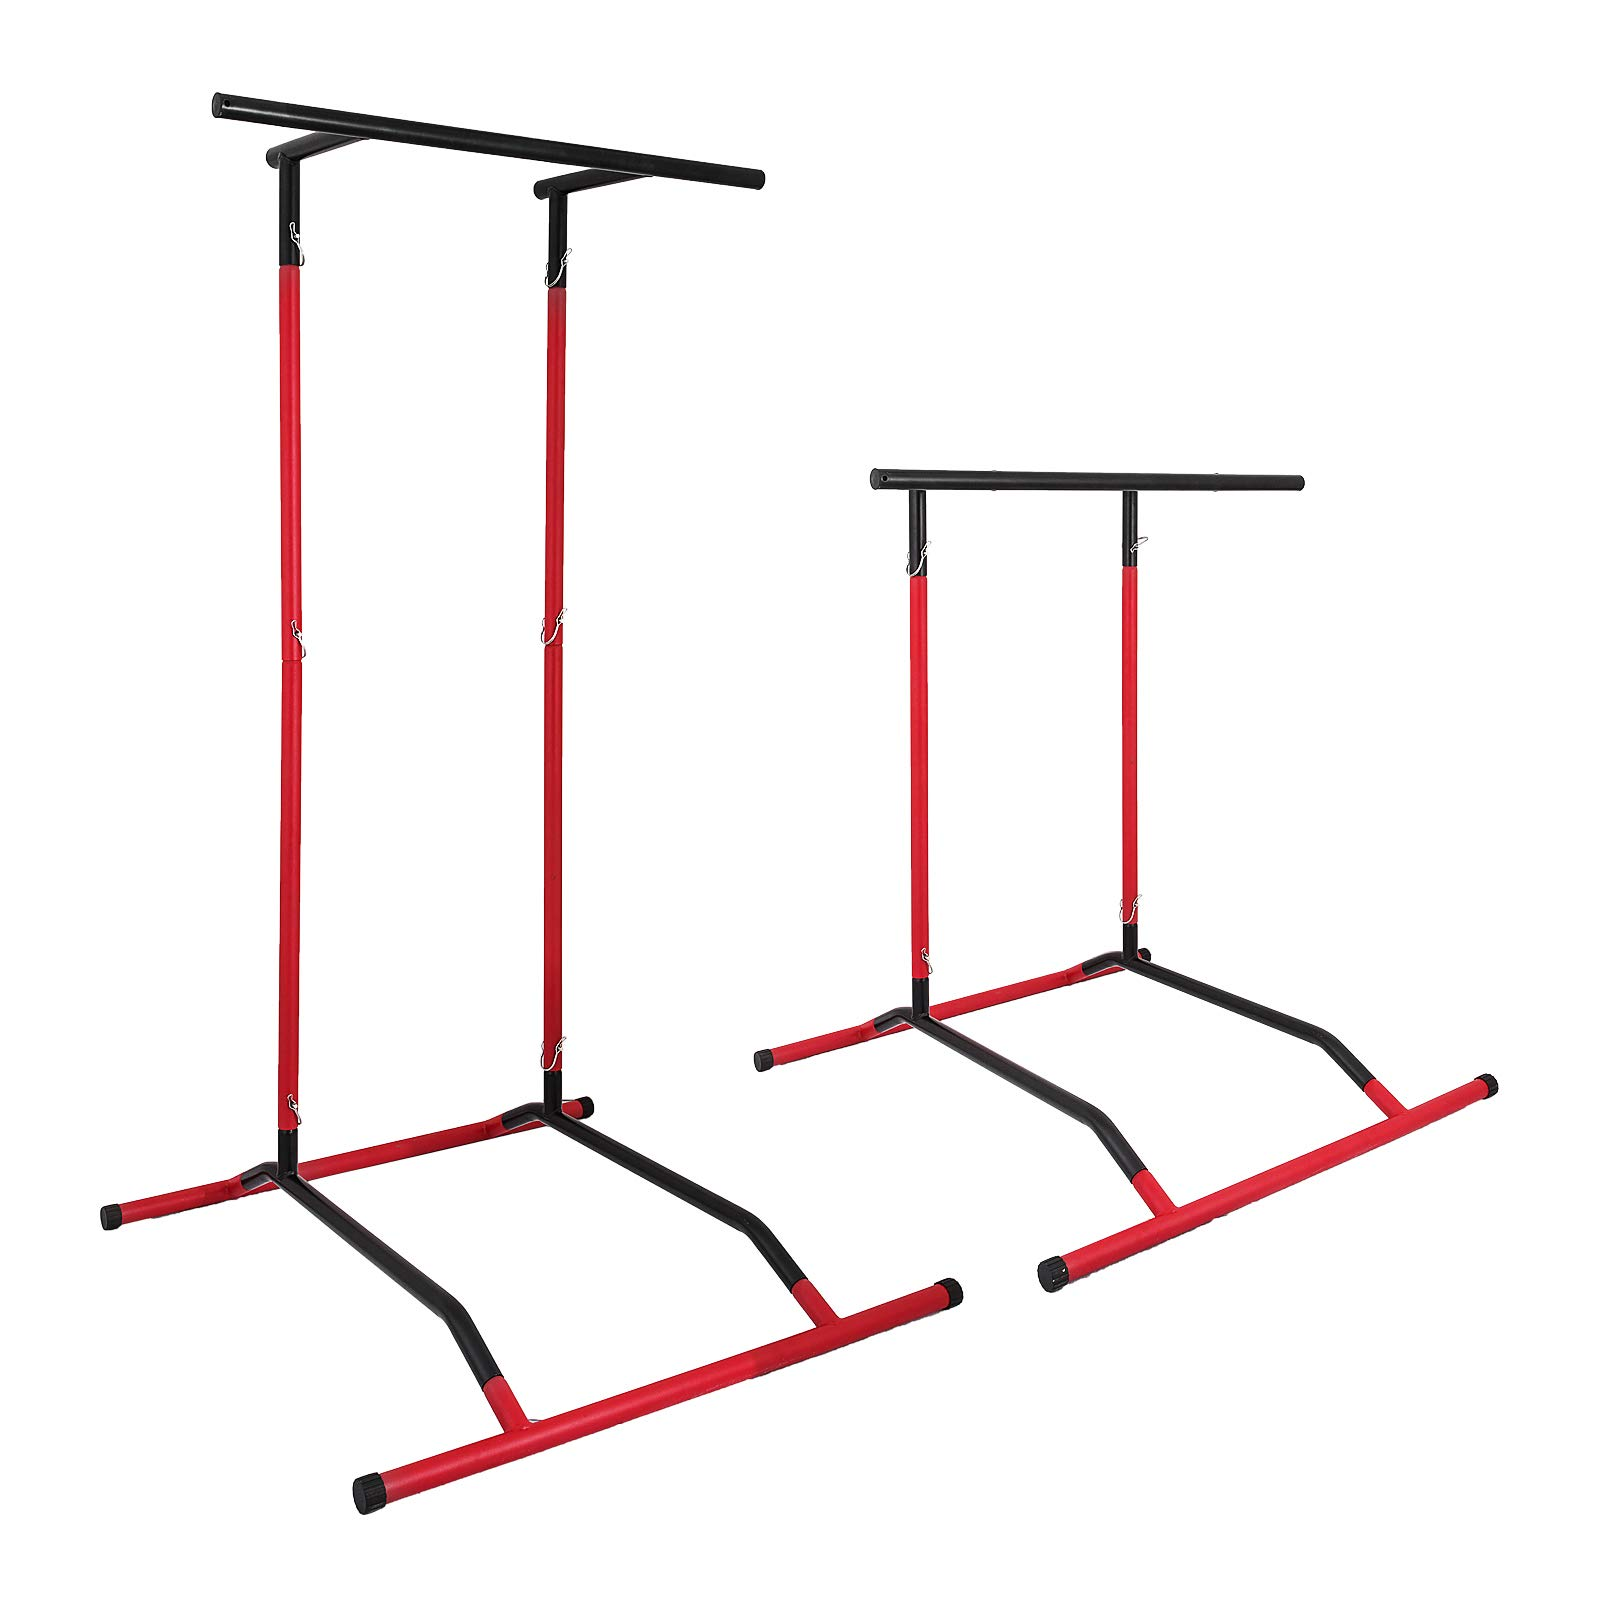 Popsport 330LBS Pull Up Dip Station Power Tower Station Multi-Station Power Tower Workout Pull Up Station with Carry Bag for Home Fitness (Black and Red with Bag)